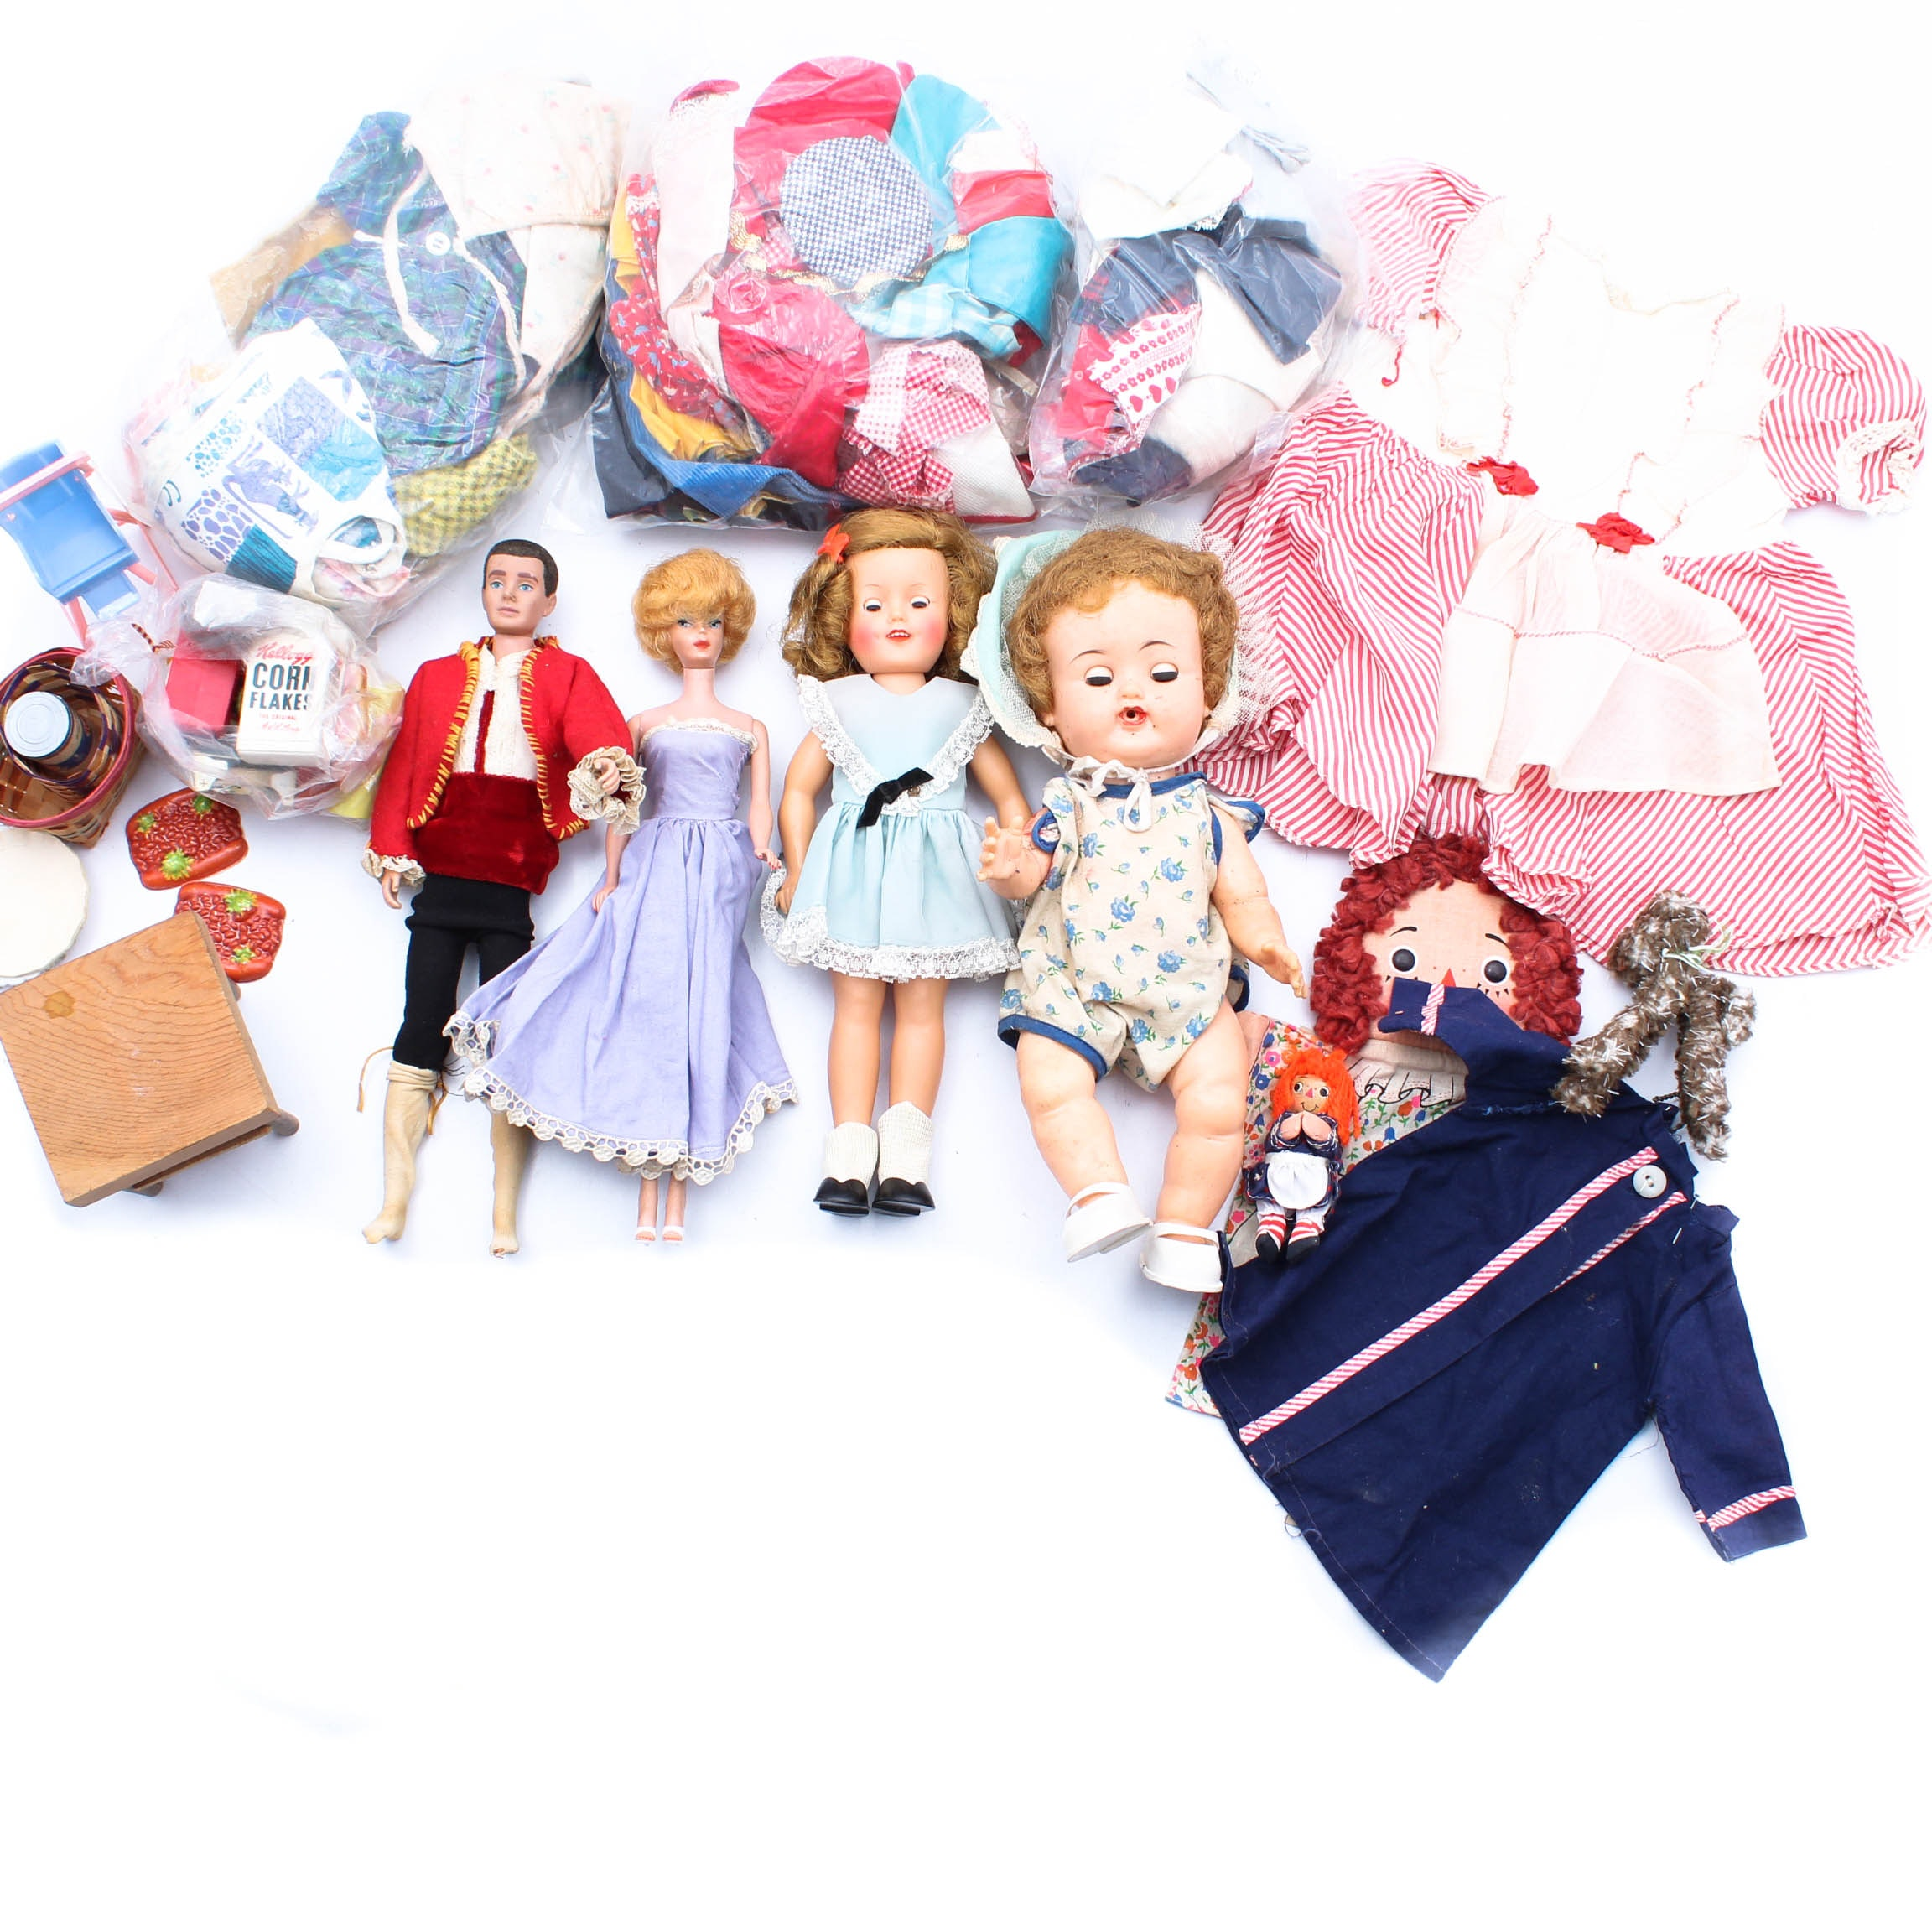 Vintage Doll Collection with Barbie, Ken and Shirley Temple